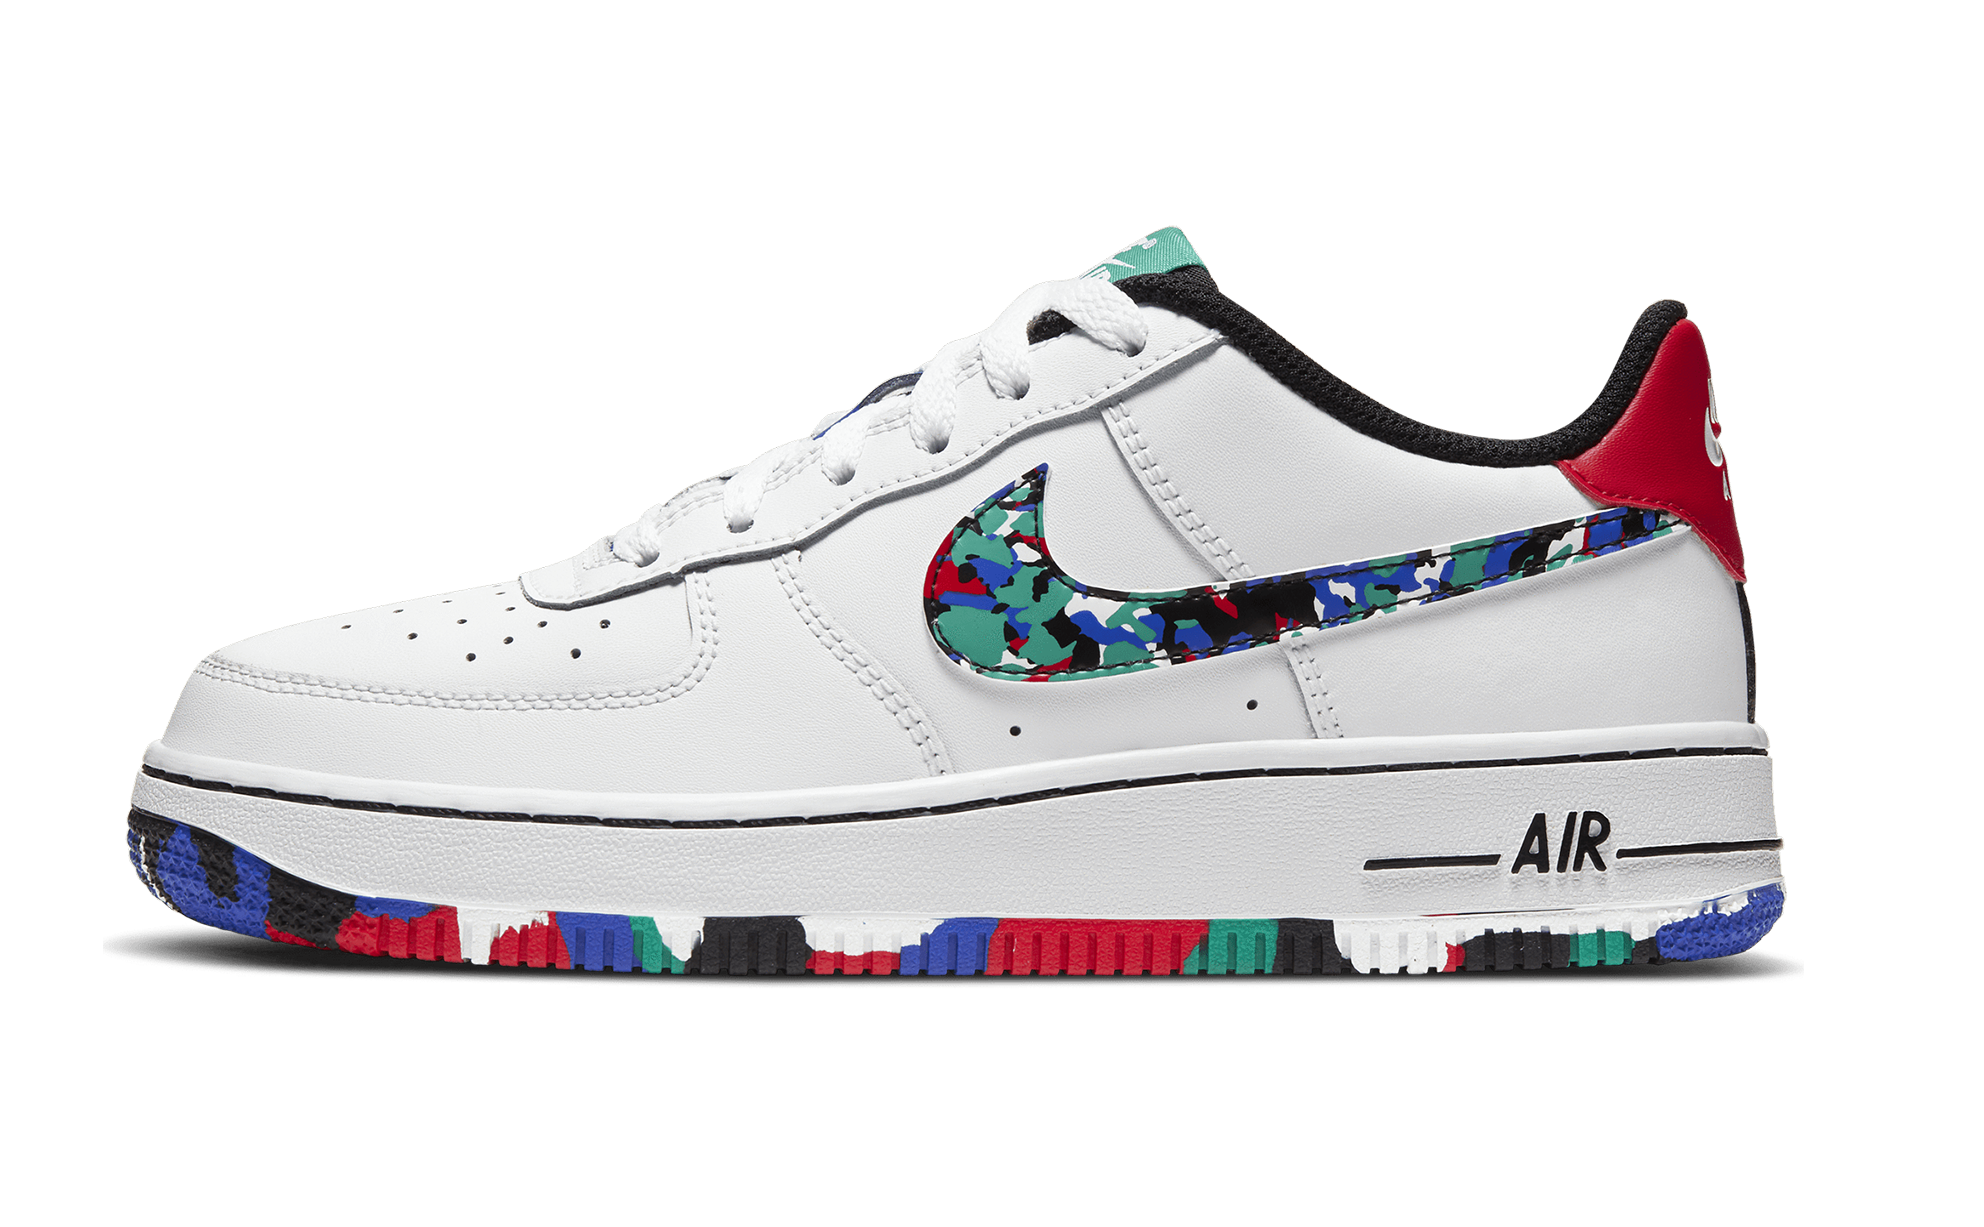 Nike Air Force 1 -PS- 'Melted Crayon'